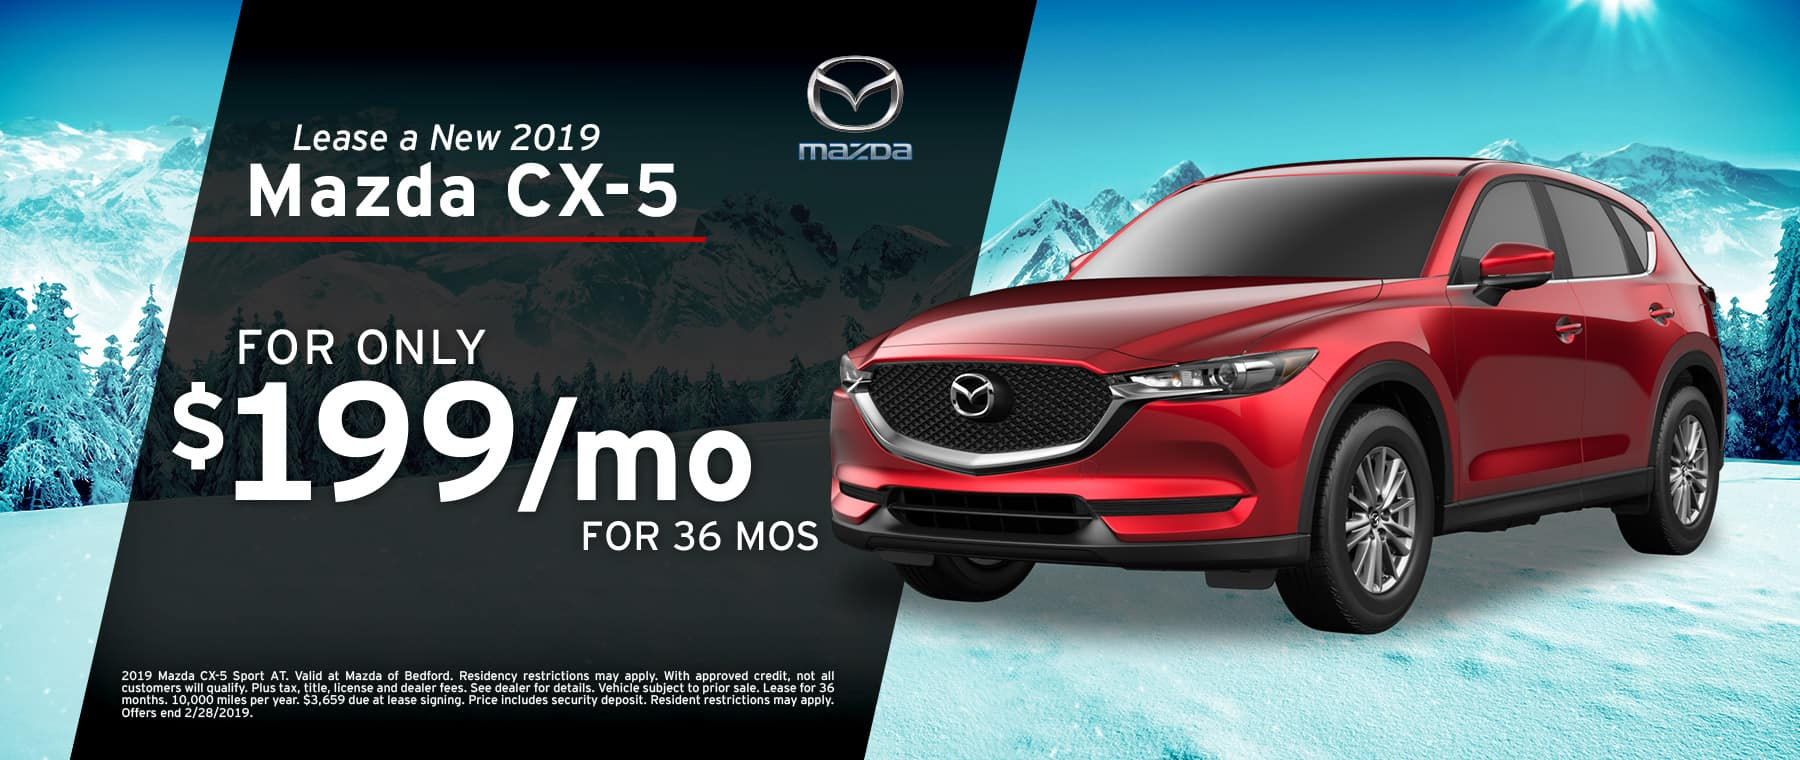 Save when you lease a 2019 Mazda CX-5 at Mazda of Bedford